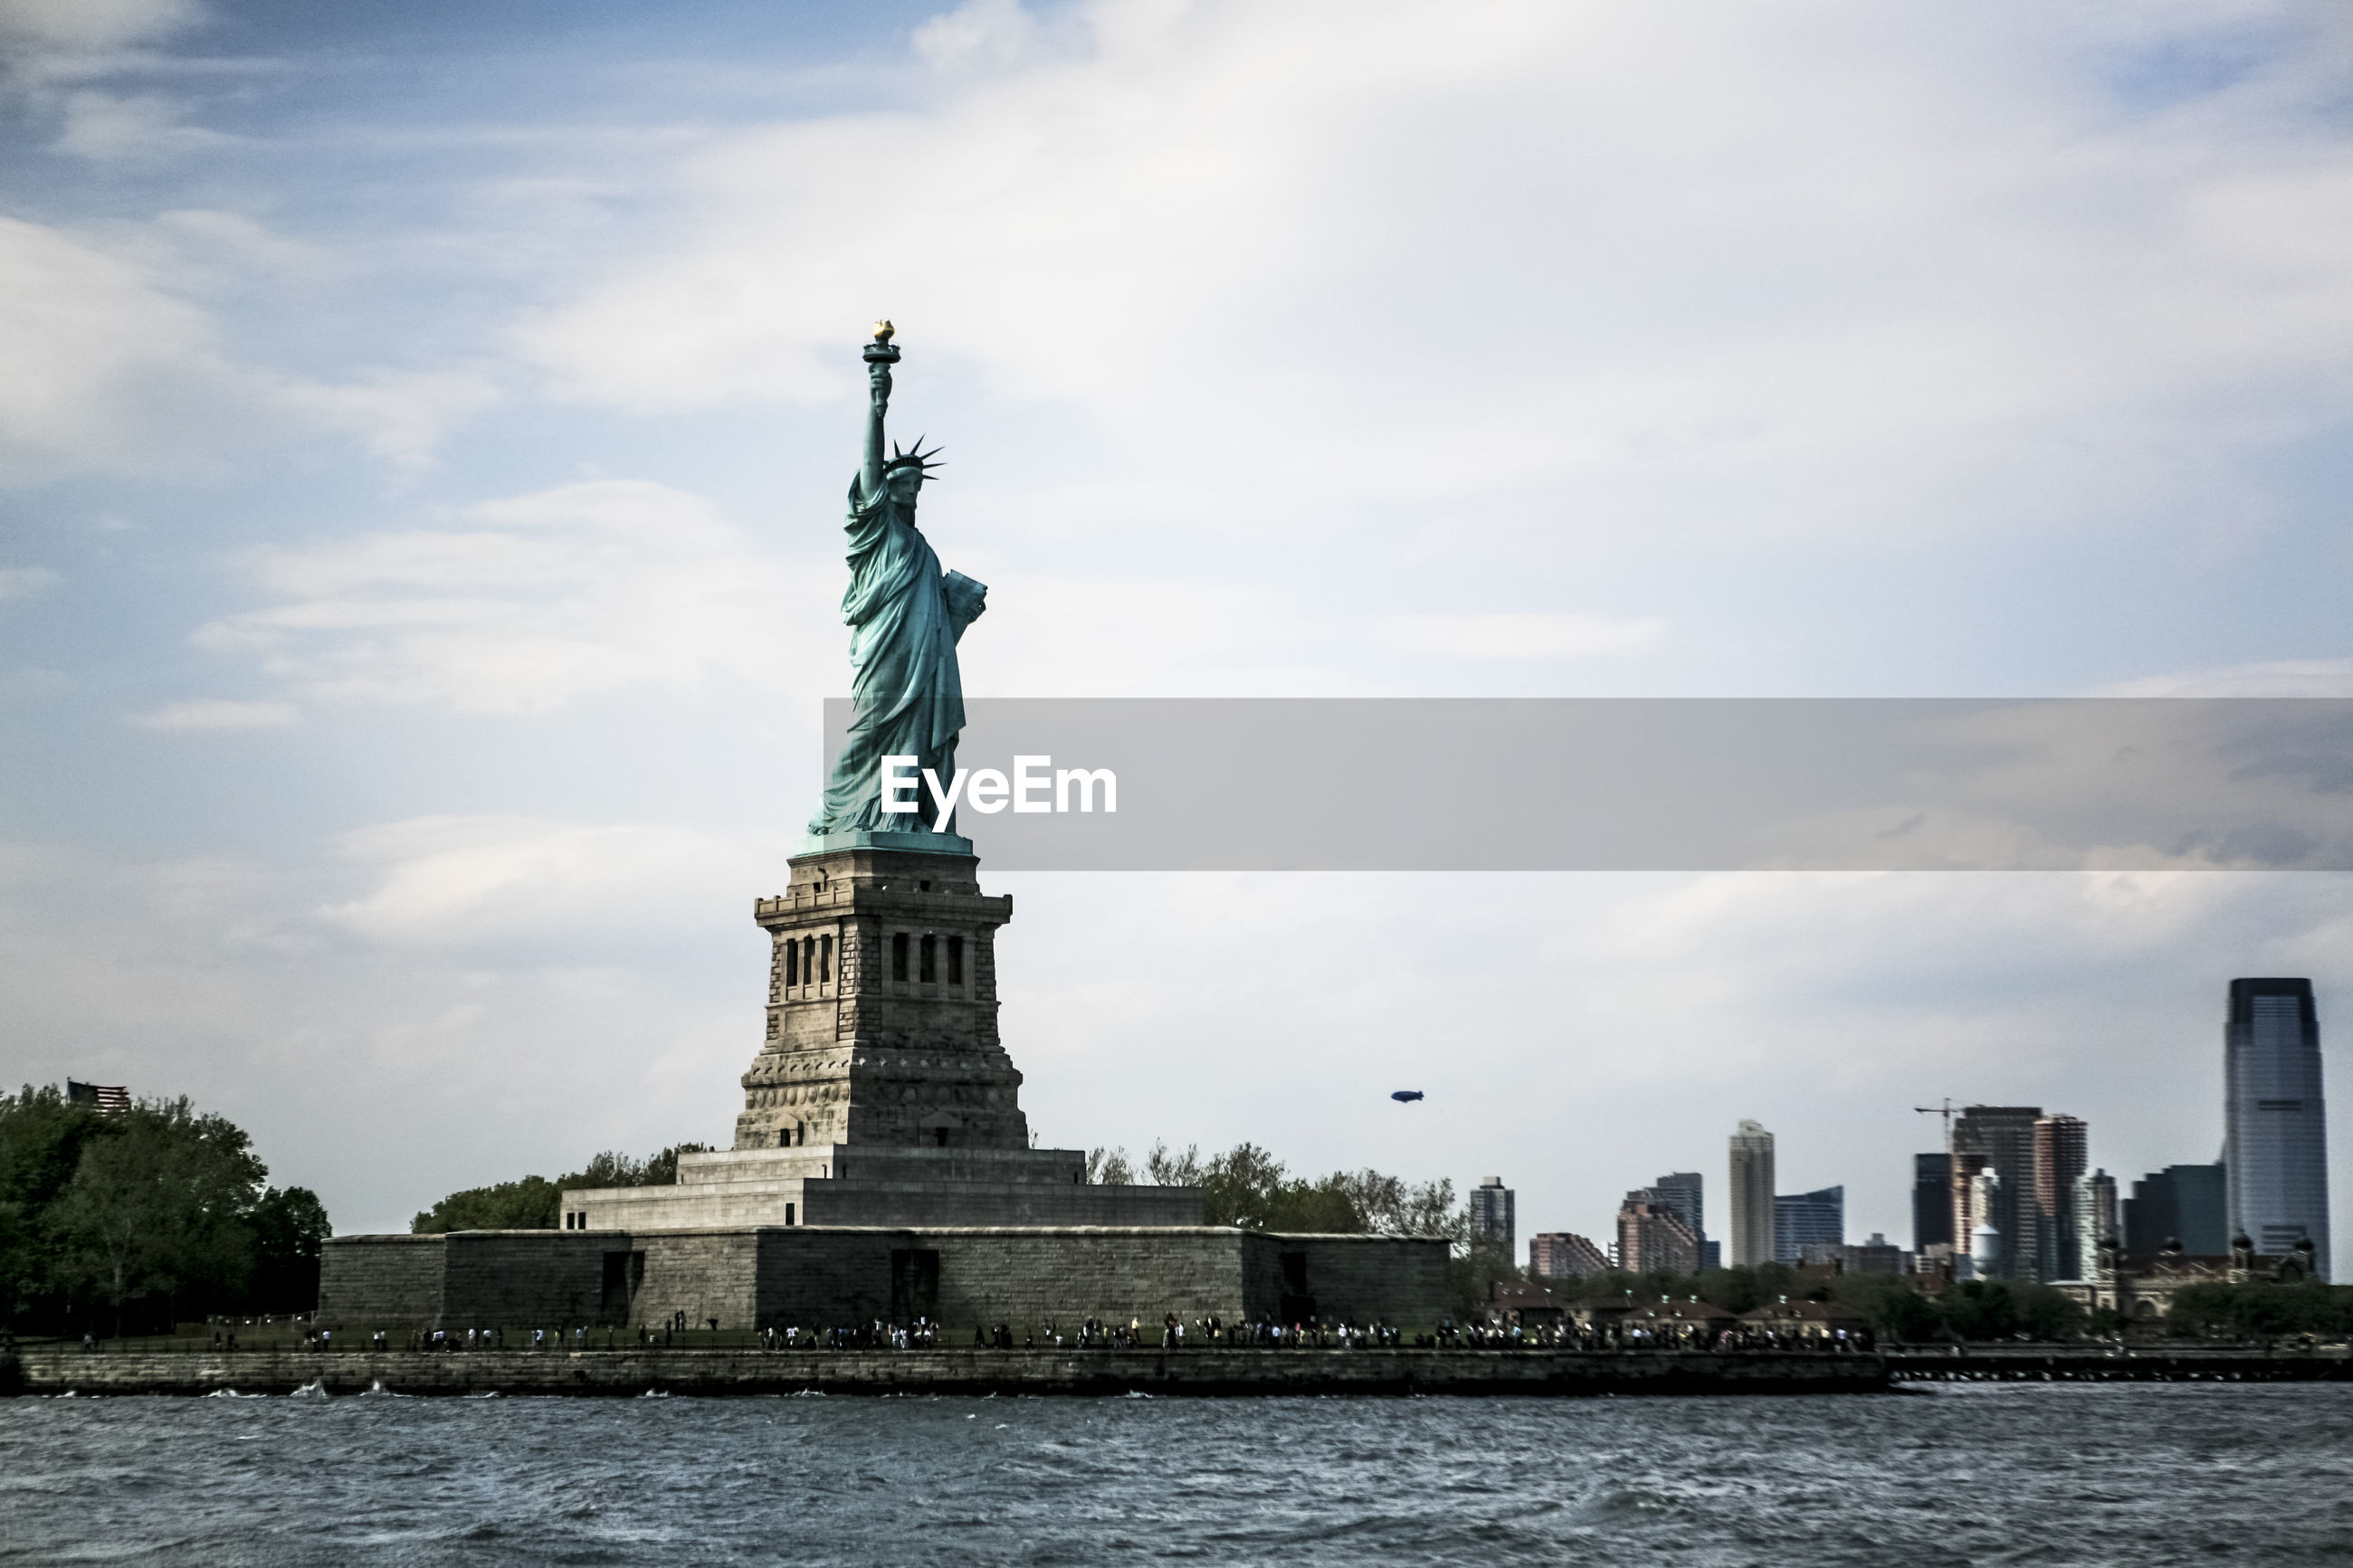 Low angle view of statue of liberty in city against cloudy sky